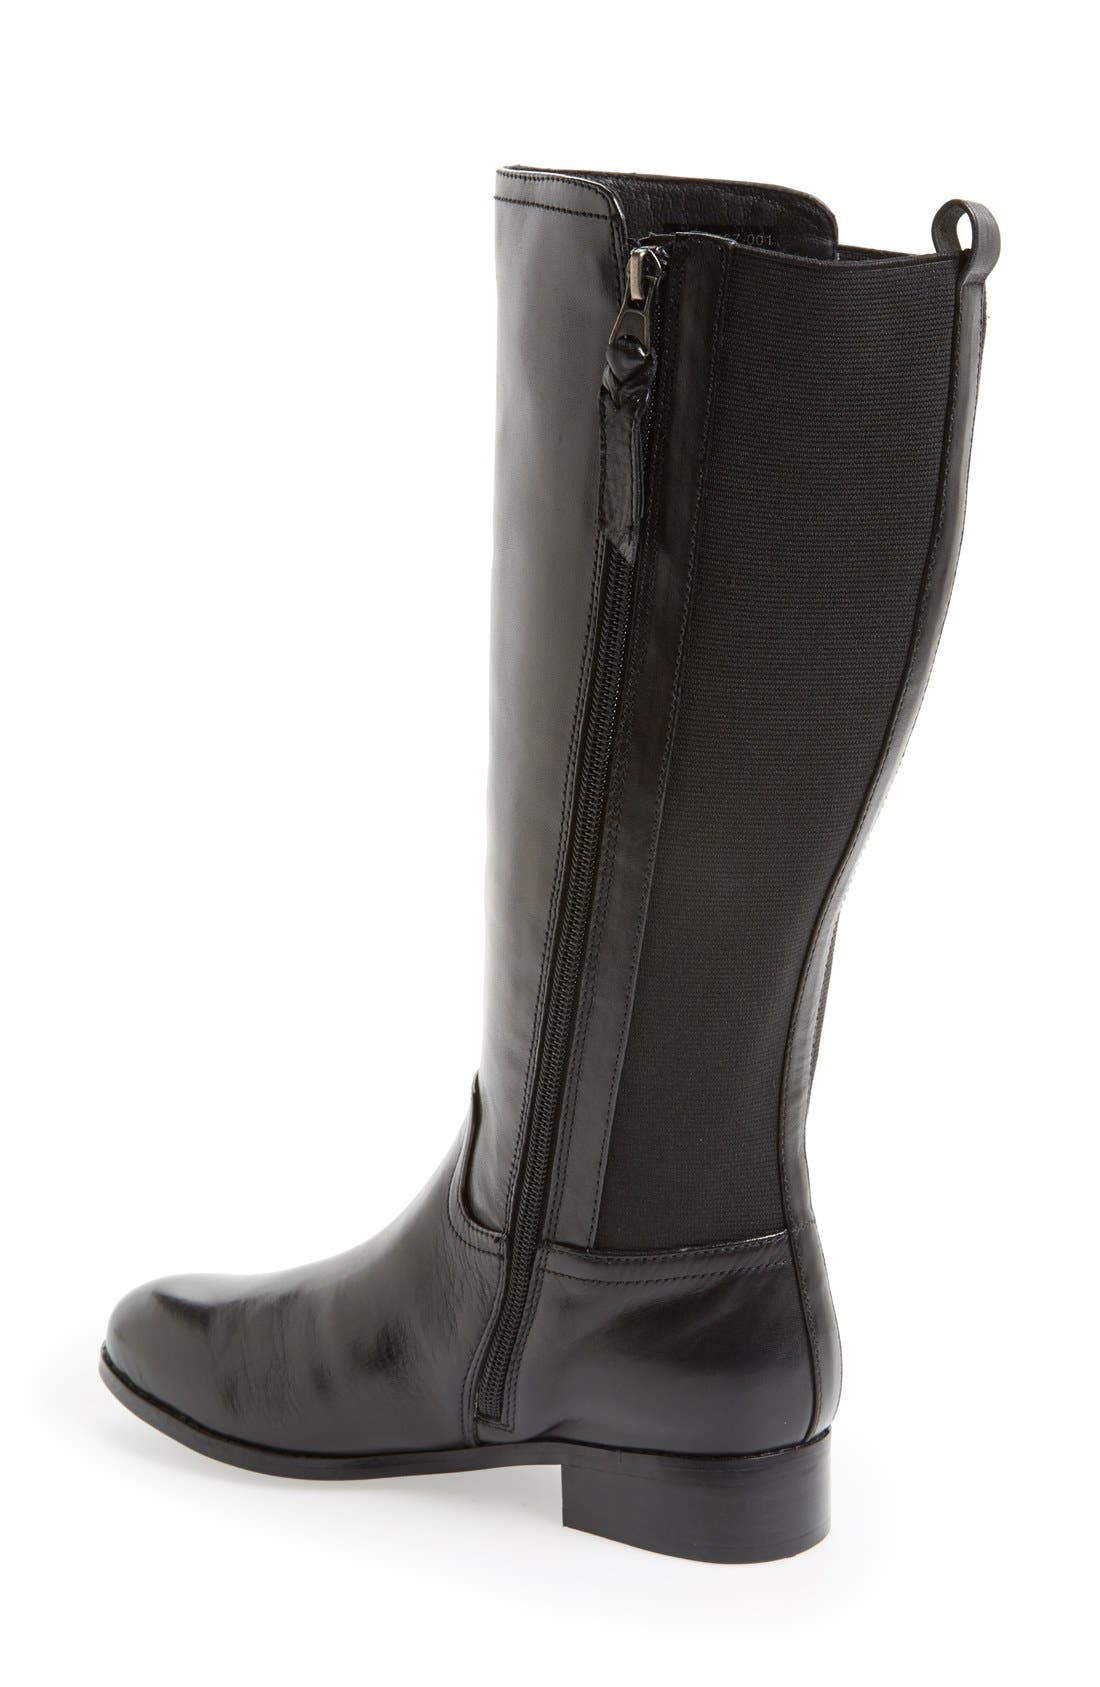 Alternate Image 2  - Trotters 'Signature Lucia' Leather Riding Boot (Wide Calf) (Women)